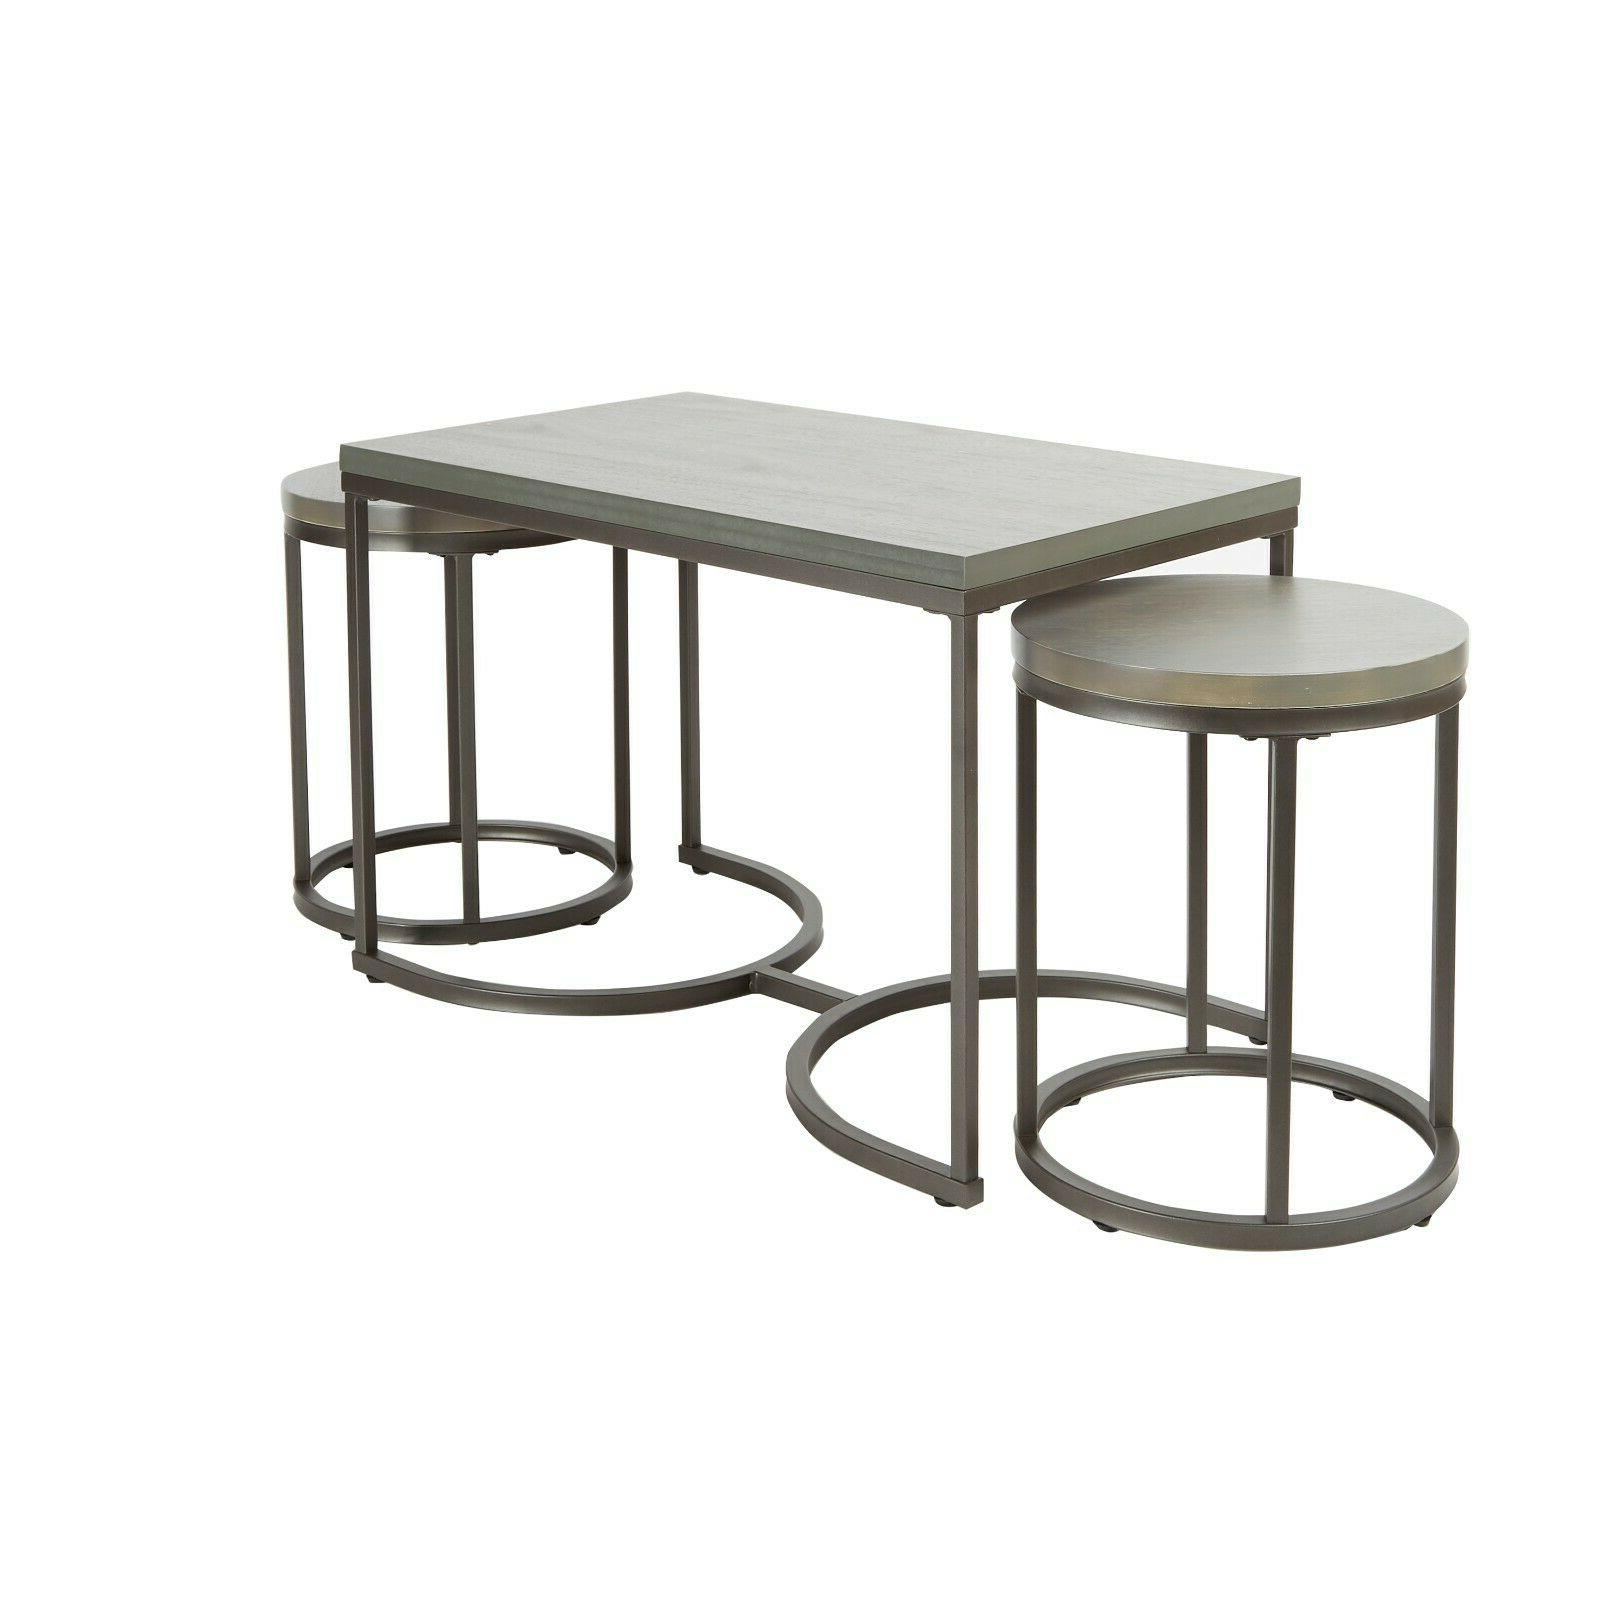 3 piece table set round nesting table end Side Tables modern